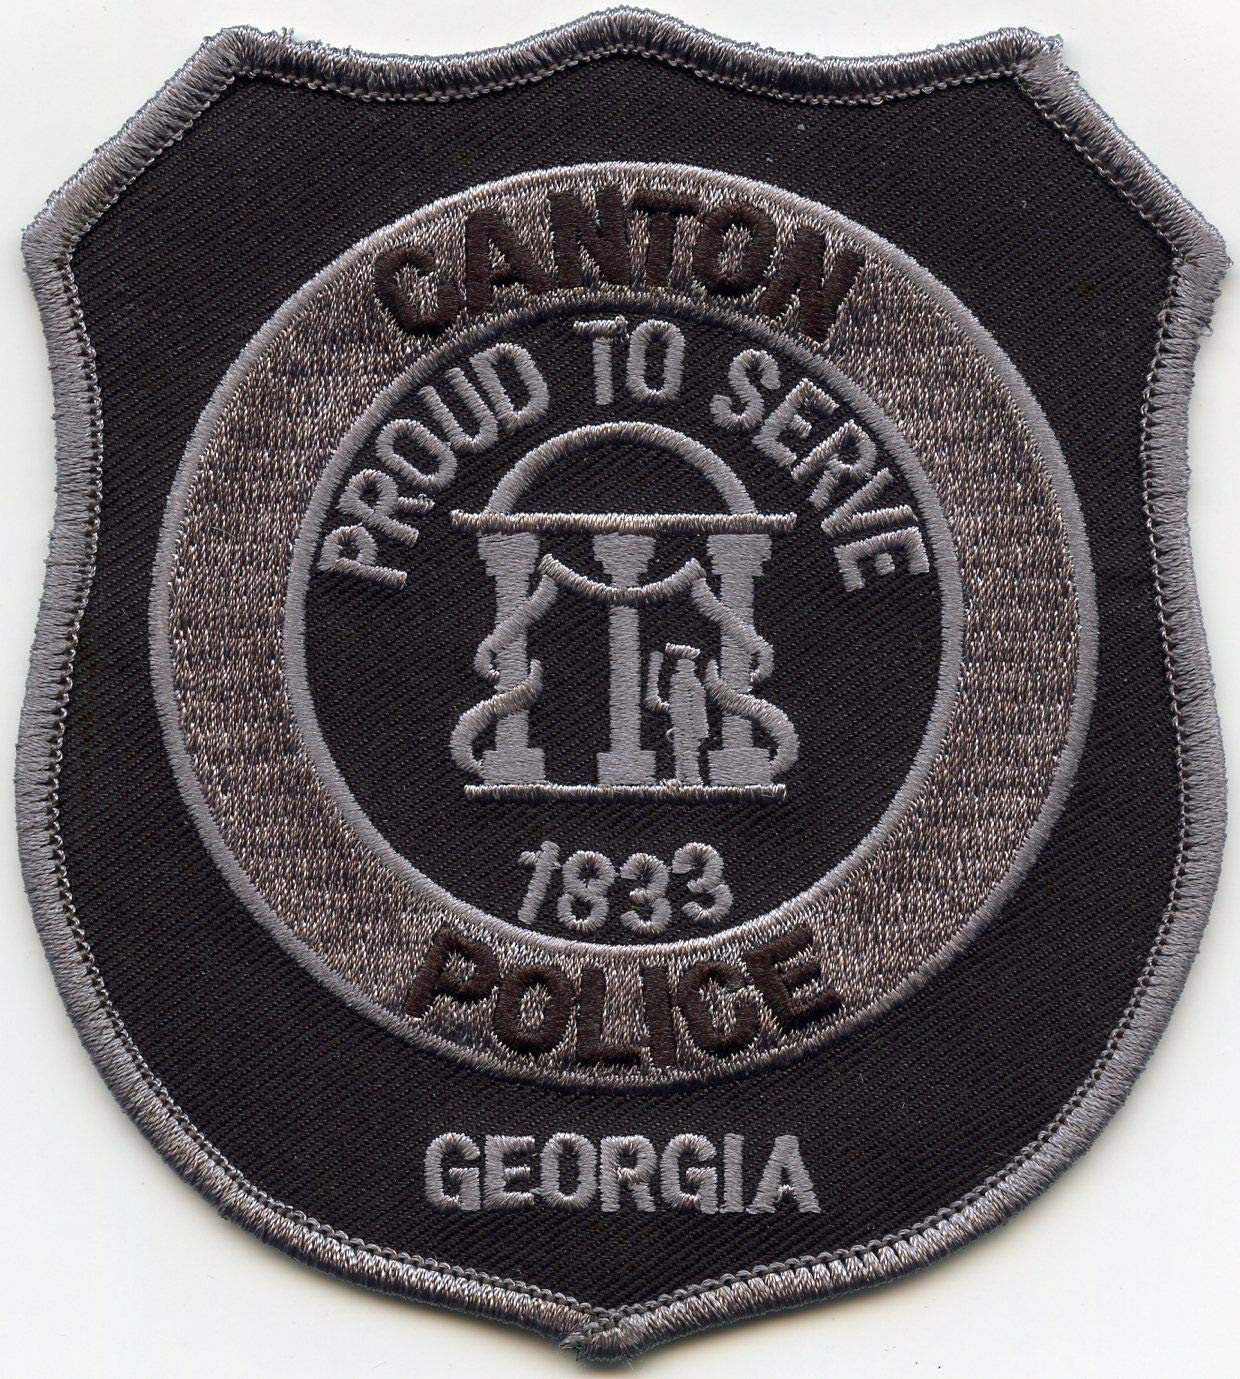 Embroidered Patch - Patches for Women Man - Canton Georgia GA Proud to Serve Subdued Police by Patcherer